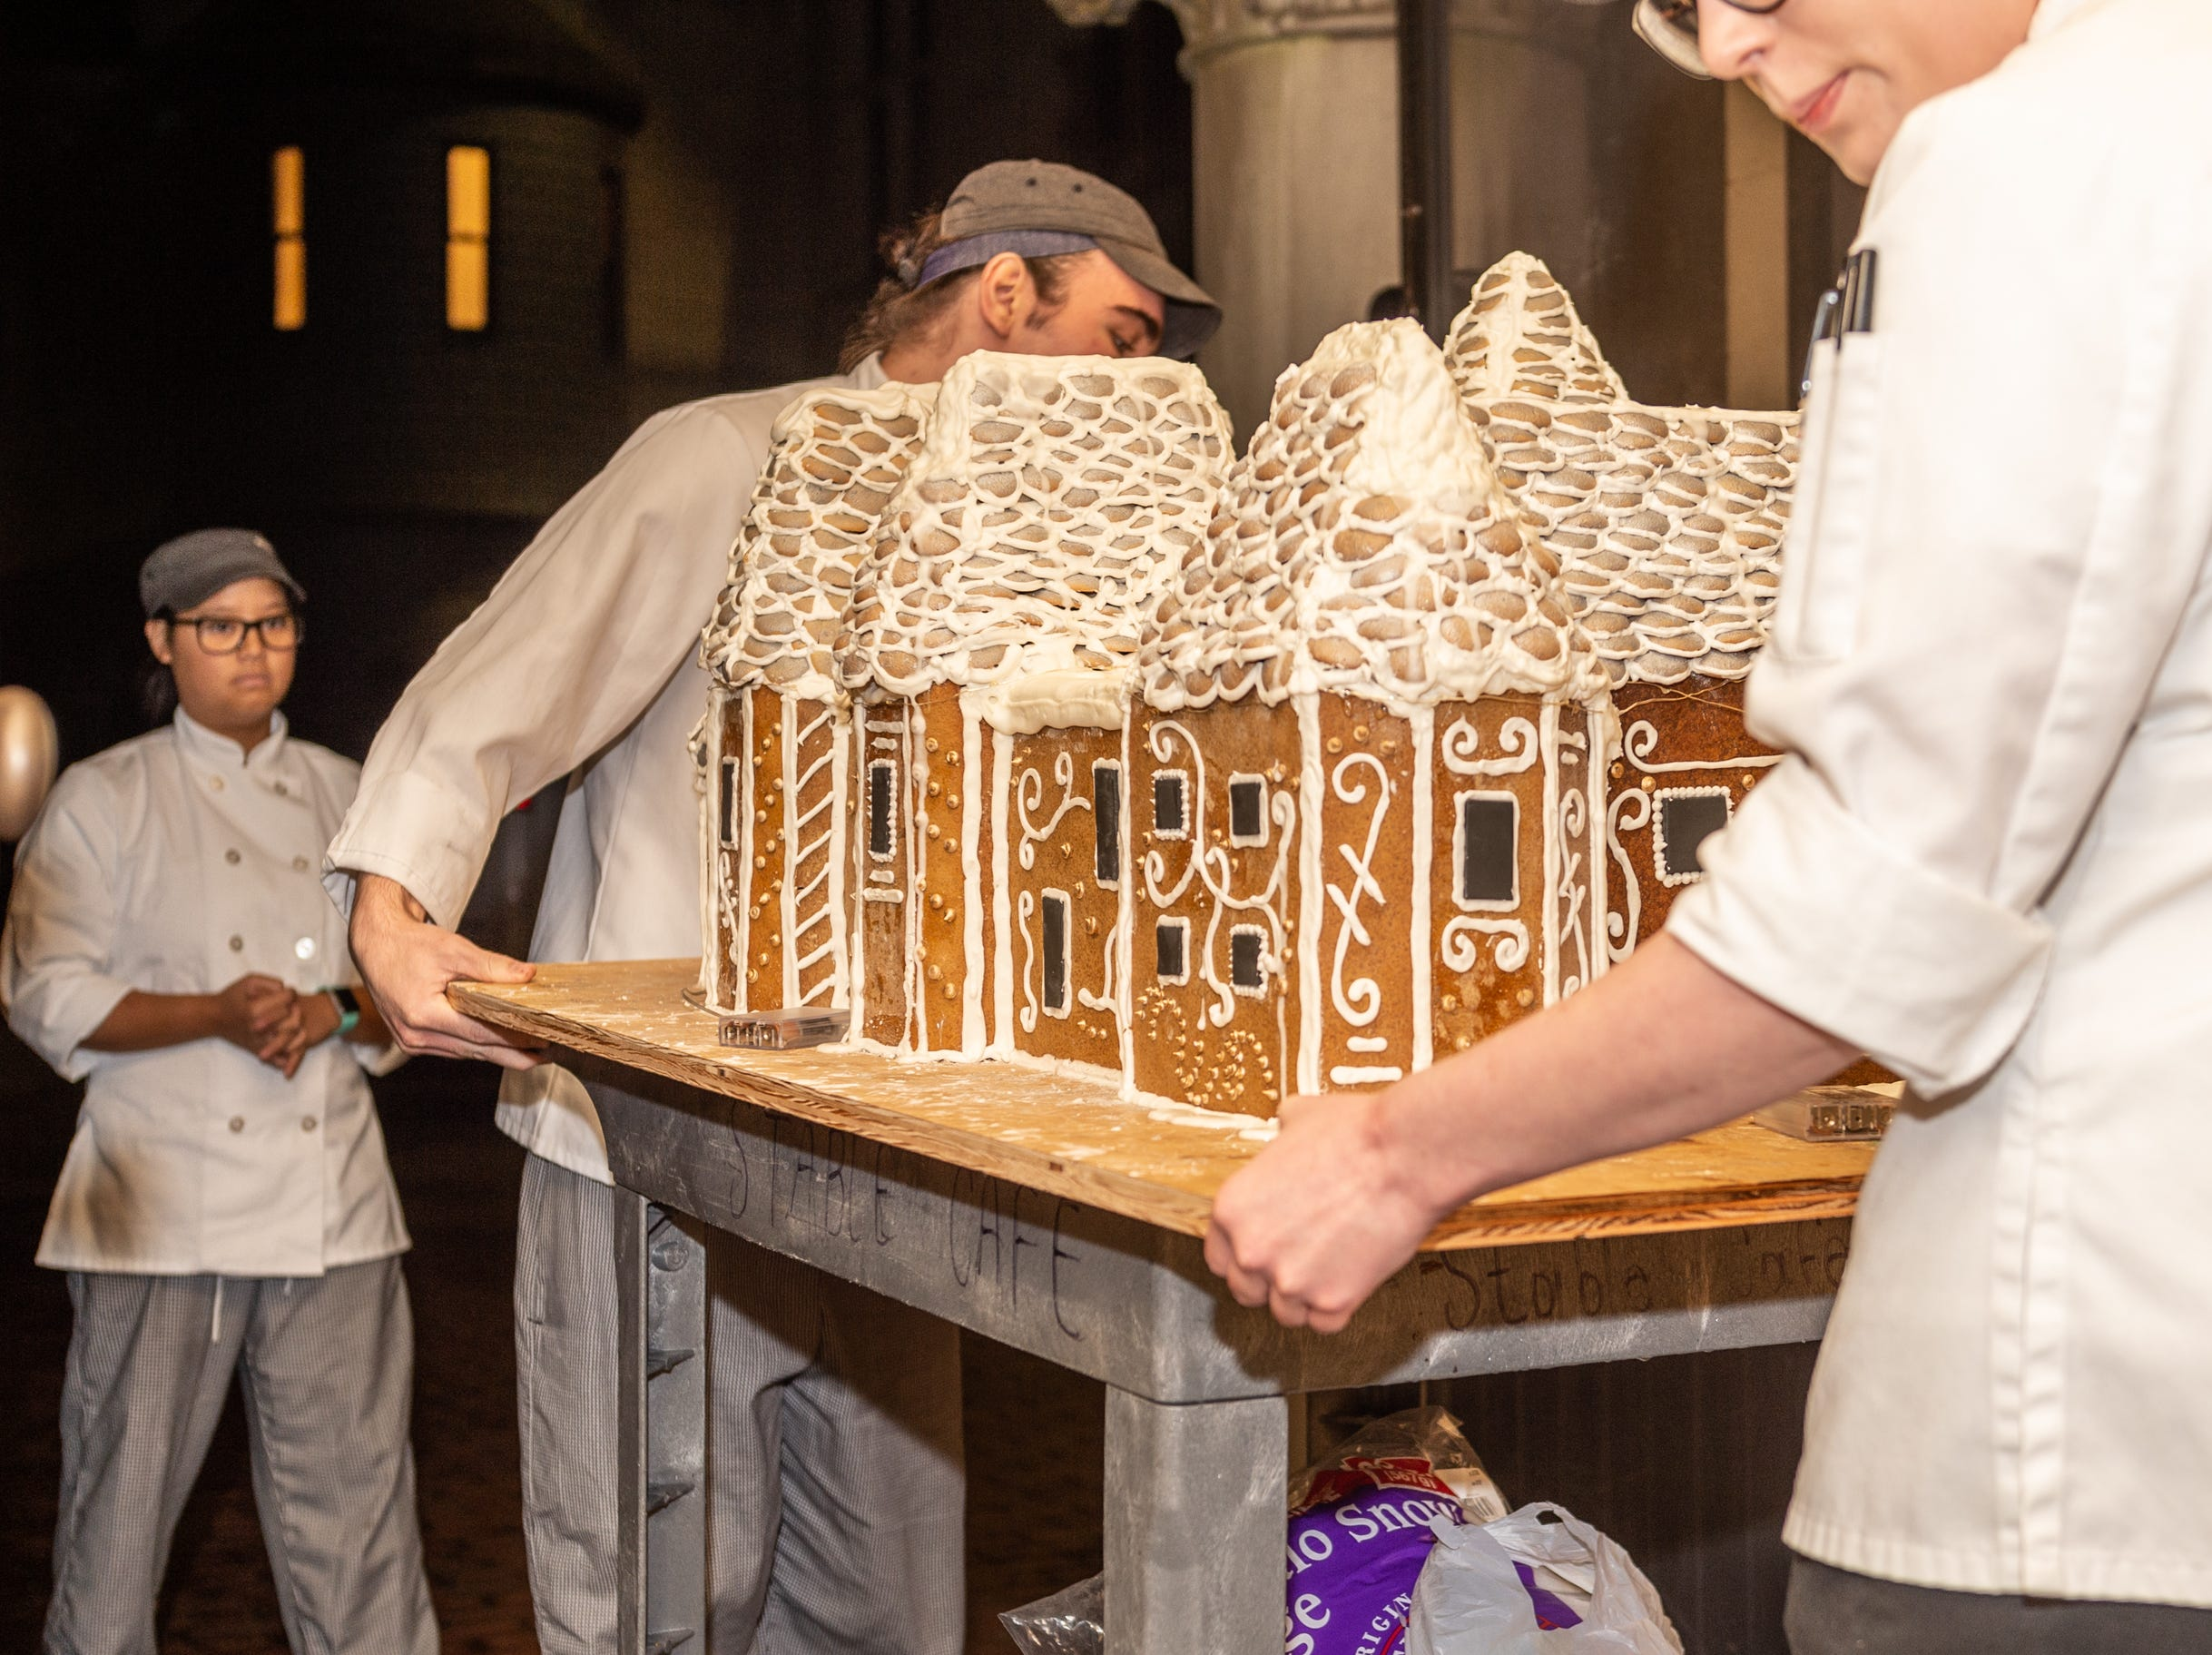 Biltmore pastry cook Deron Noel, center, and pastry demi chef Megan Moorhead, right, maneuver the gingerbread house through a hallway in Biltmore House in the predawn dark Nov. 2, 2018, as pastry cook Kayla Breedlove follows.